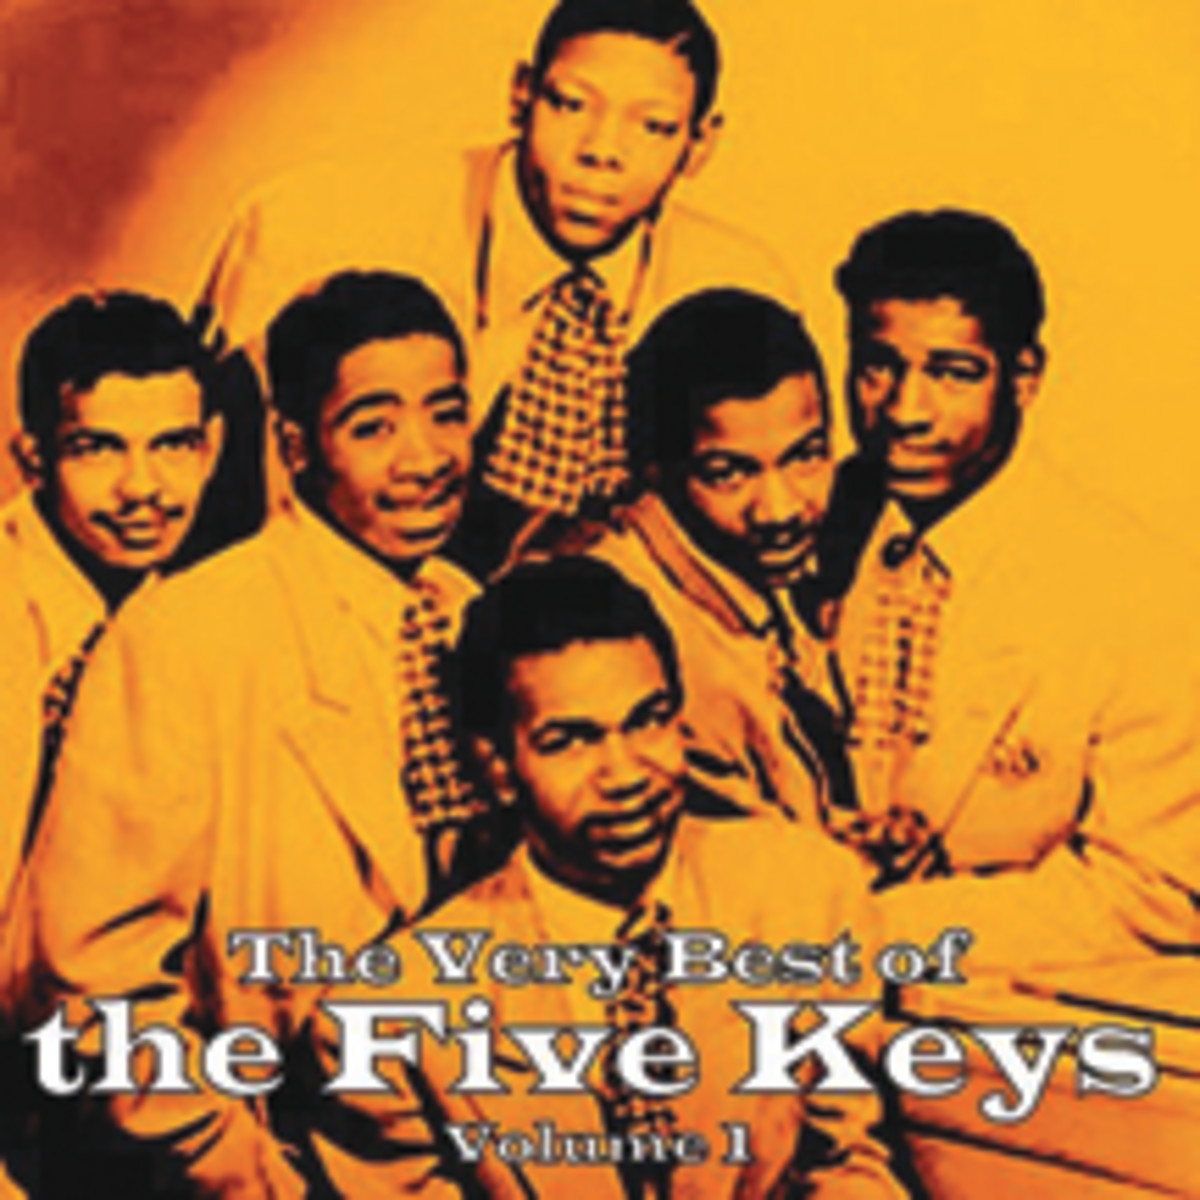 The Very Best of The Five Keys